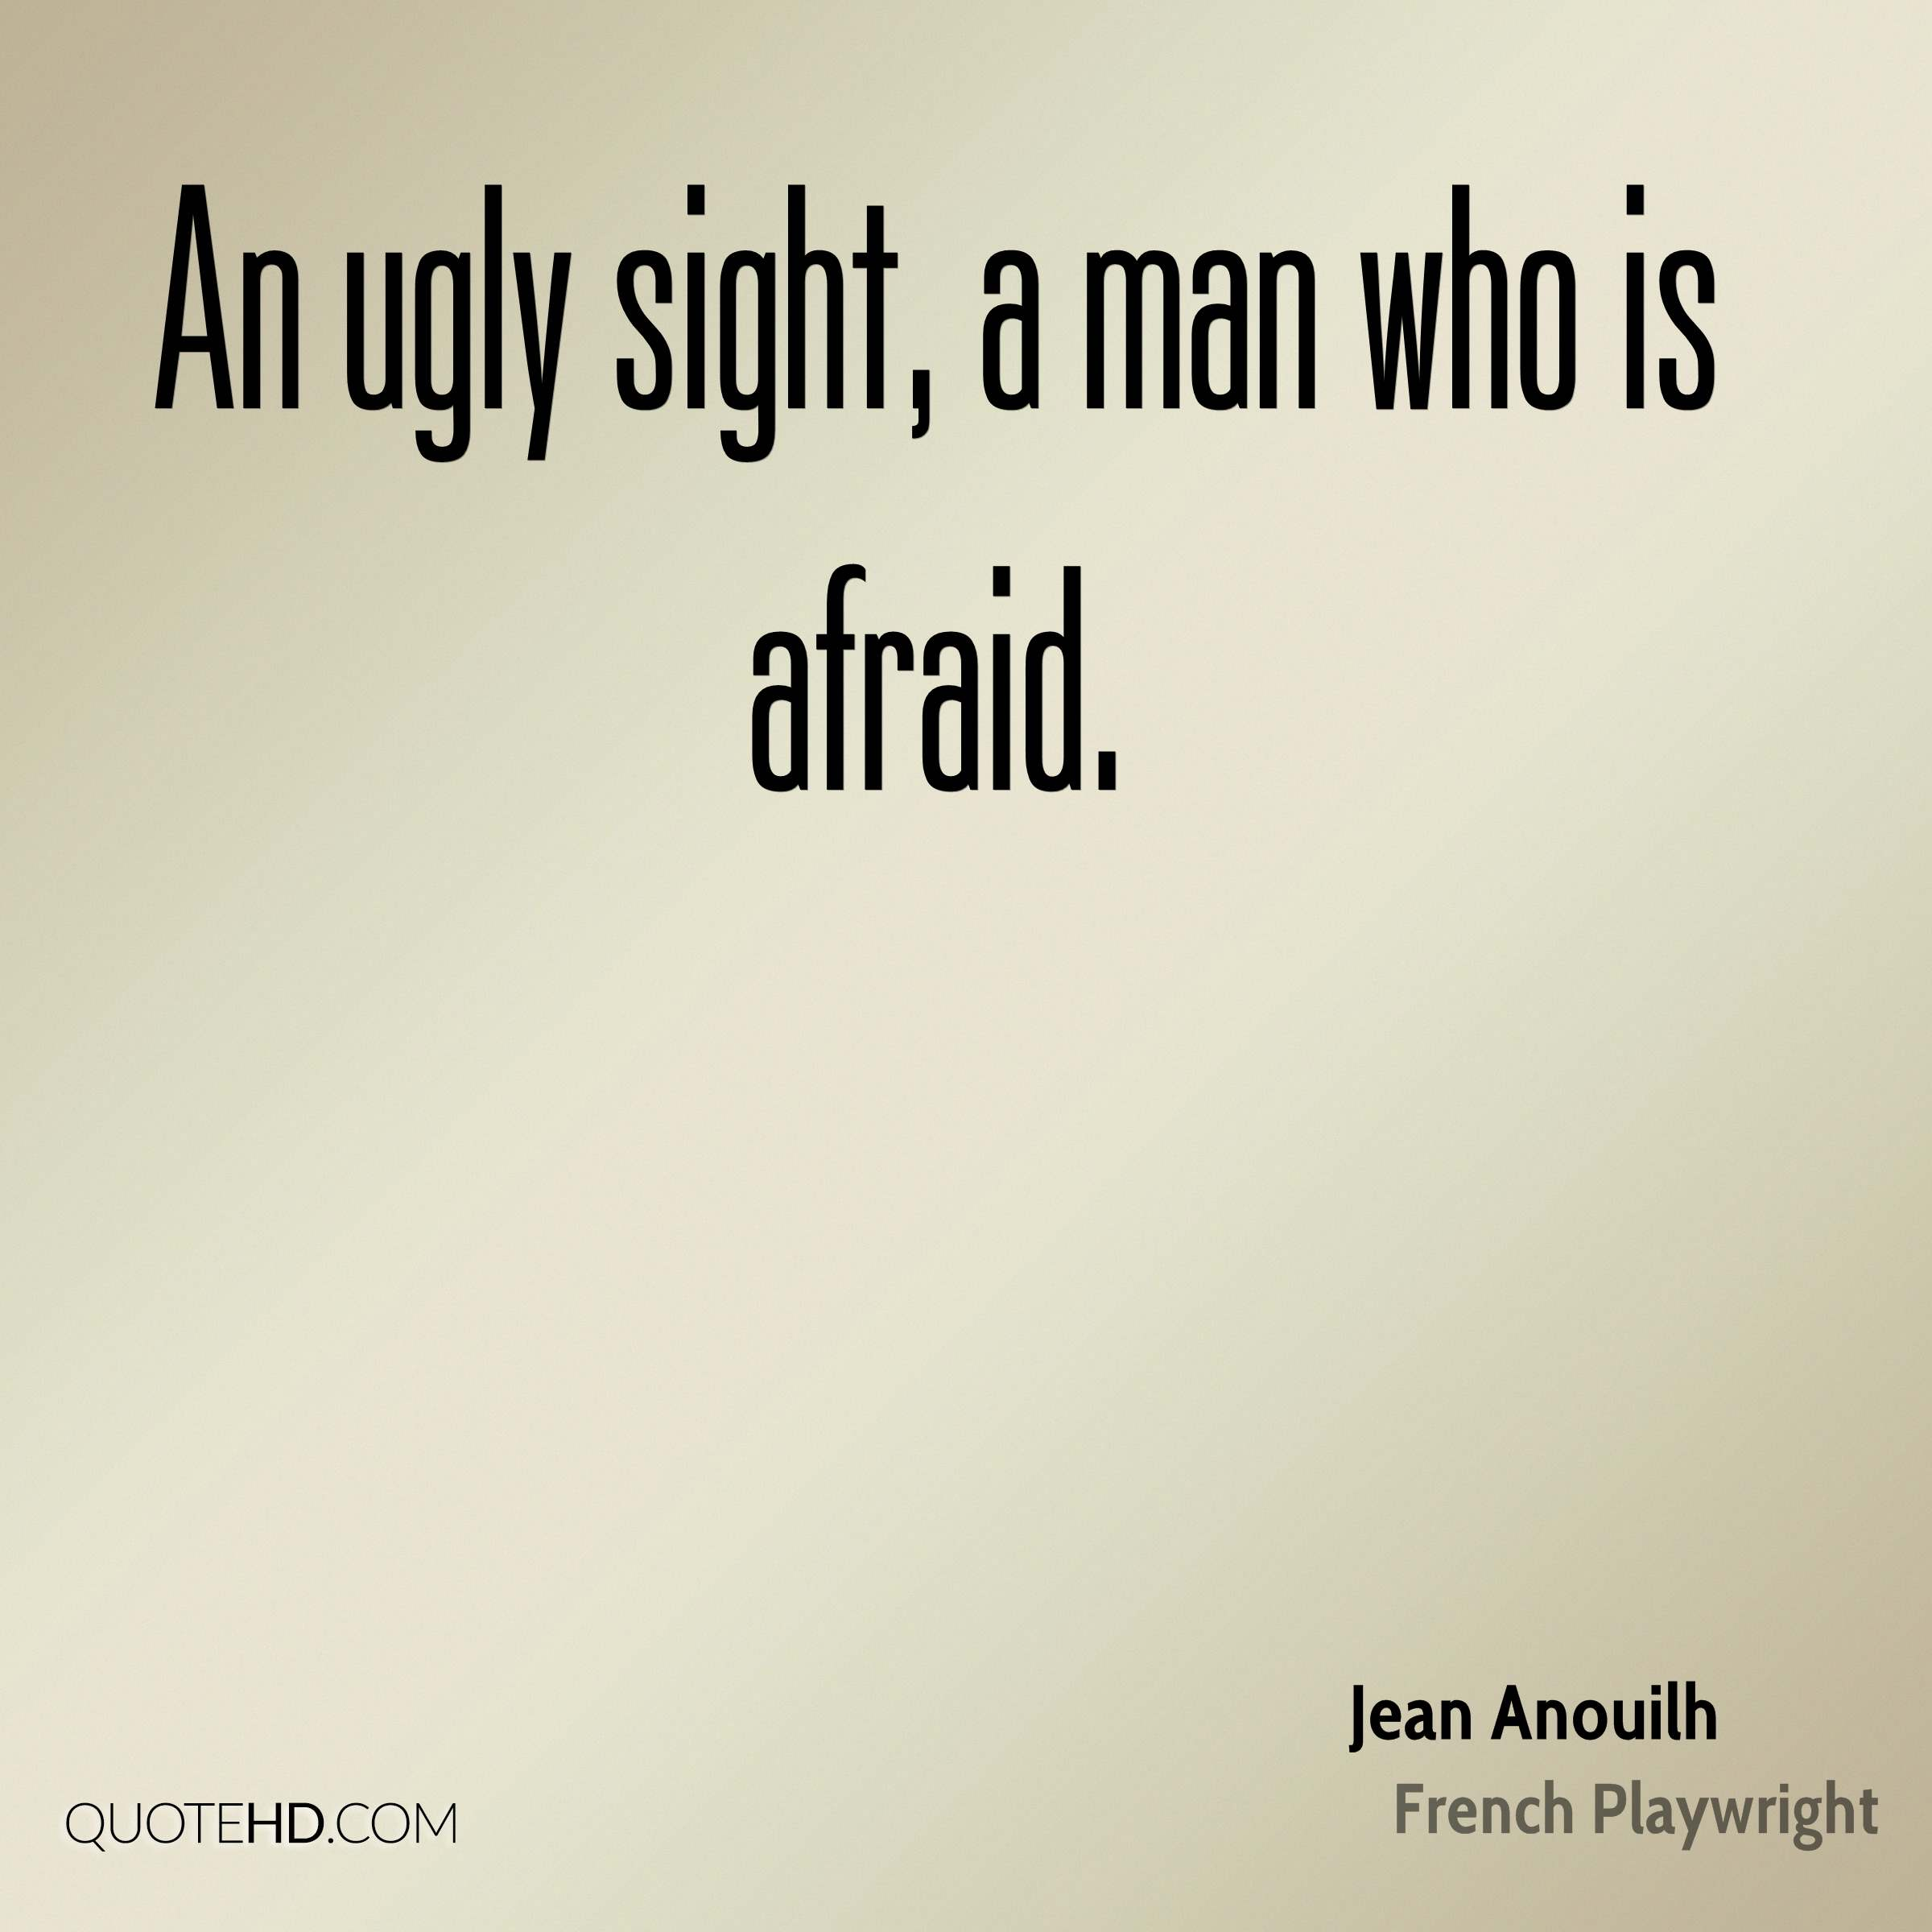 An ugly sight, a man who is afraid.